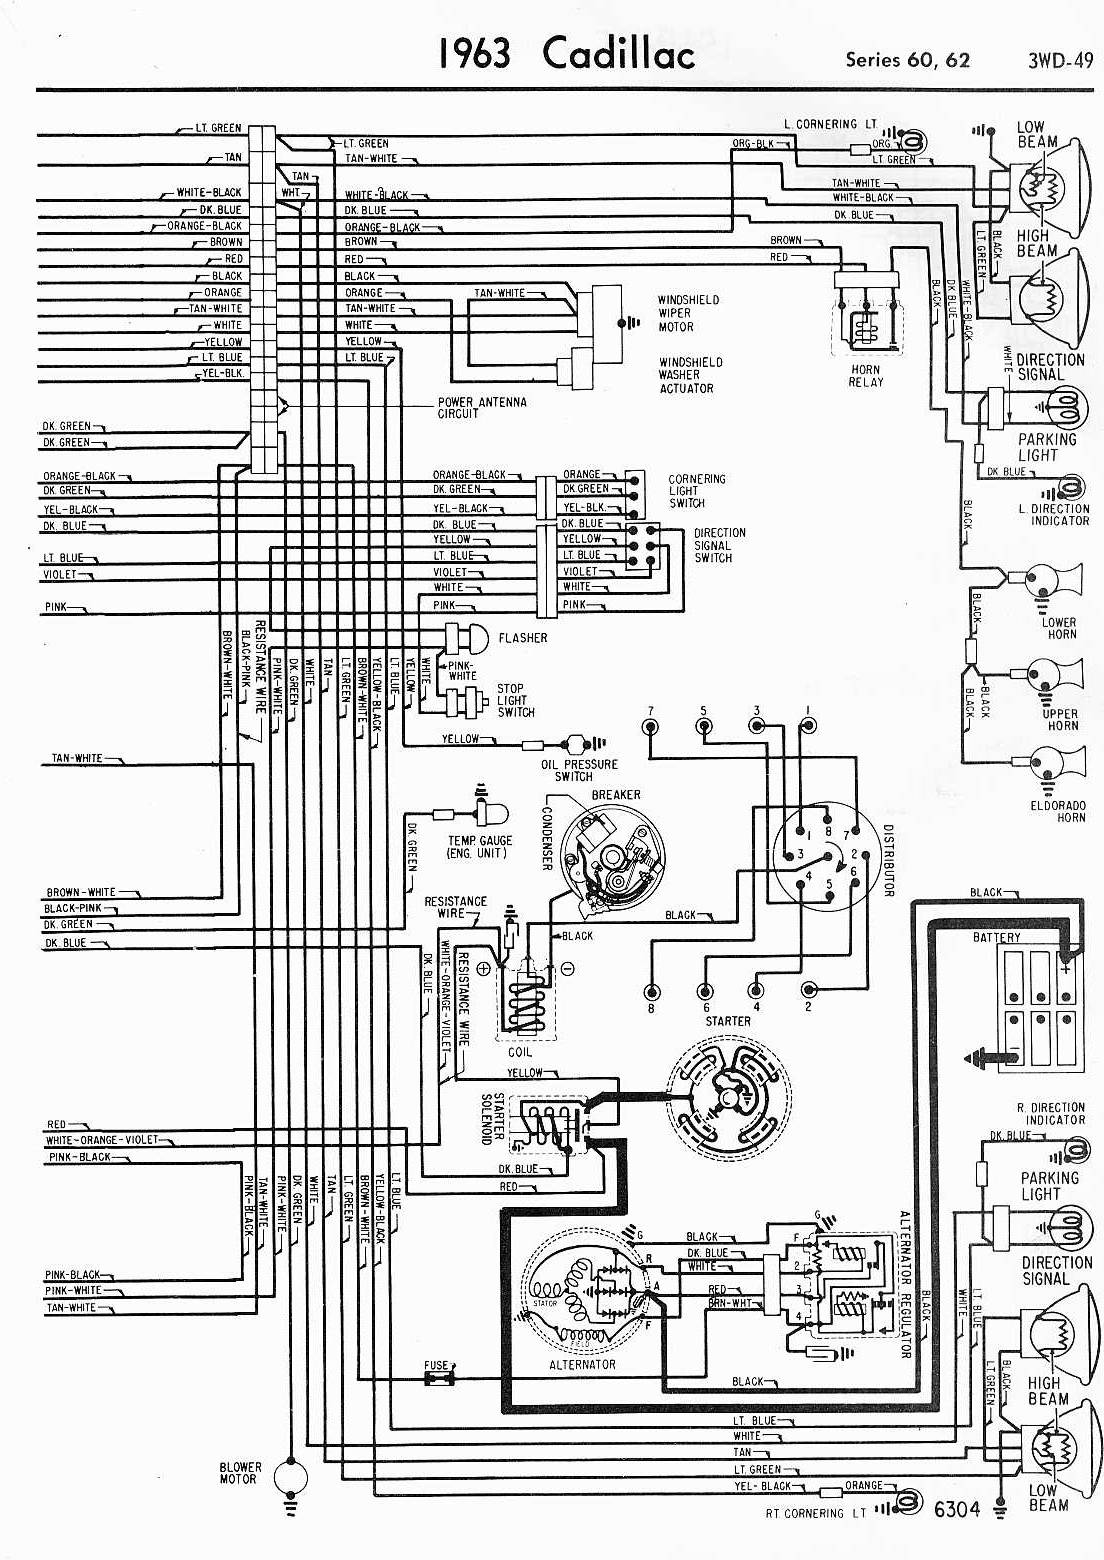 1978 cadillac seville wiring diagrams wiring diagram general 1963 cadillac deville wire diagram iet mhcarsalederry uk [ 1104 x 1560 Pixel ]